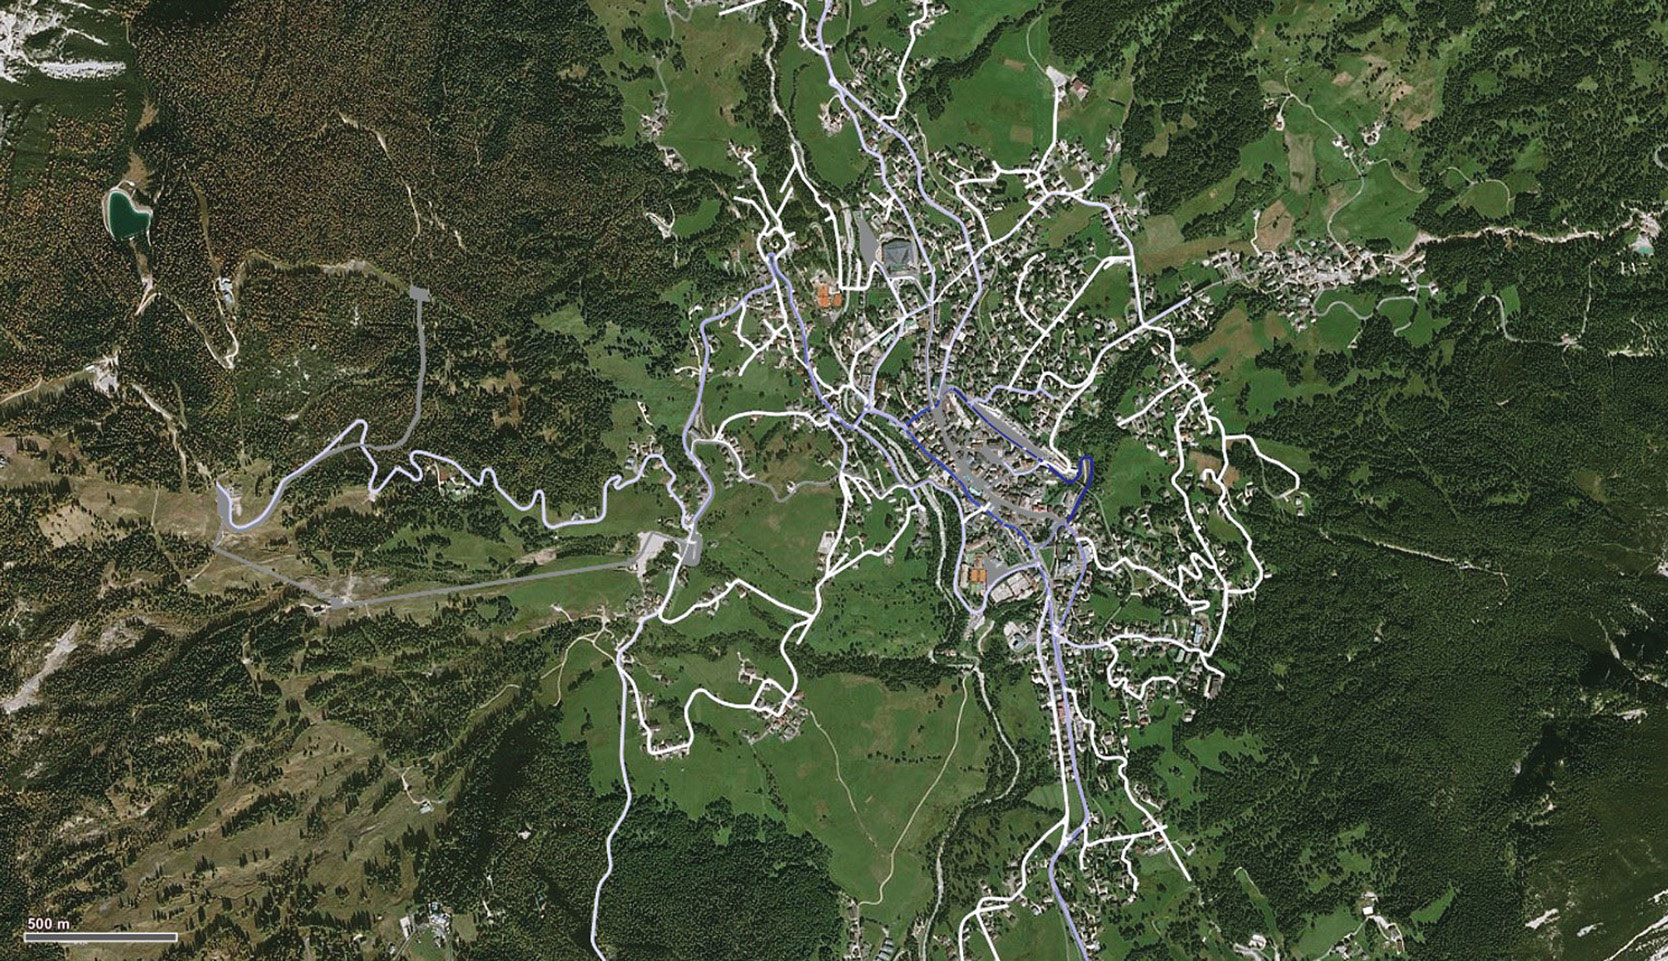 Alpine World Ski Championships Cortina 2021 Strategic Accessibility and Mobility Plan, Hourly Traffic Volume